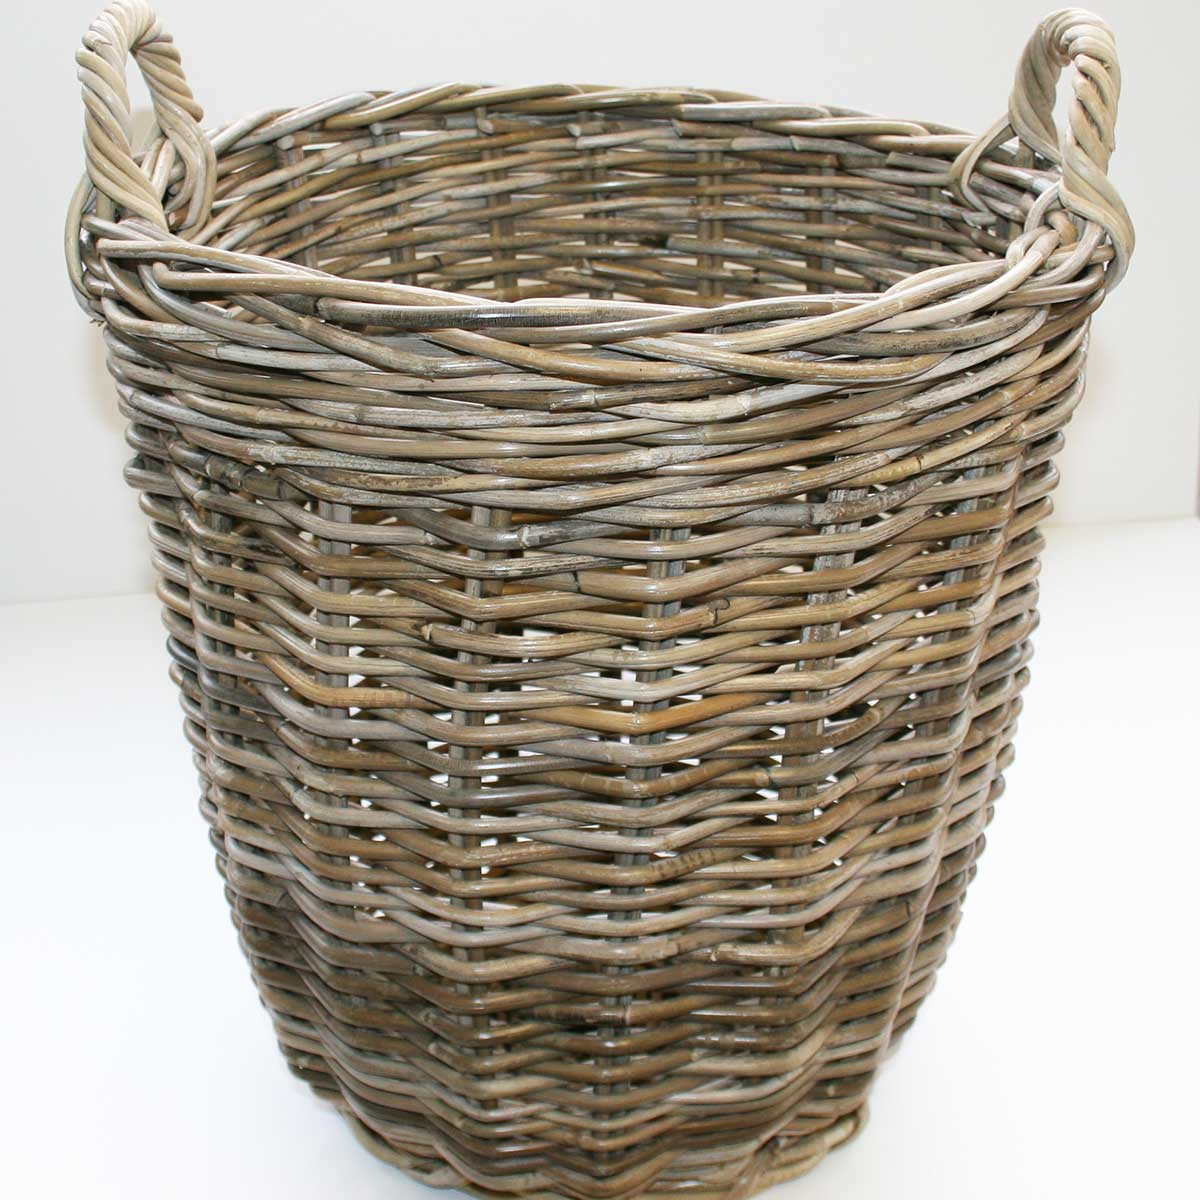 Picture of Glenweave Woven Round Basket with Handles